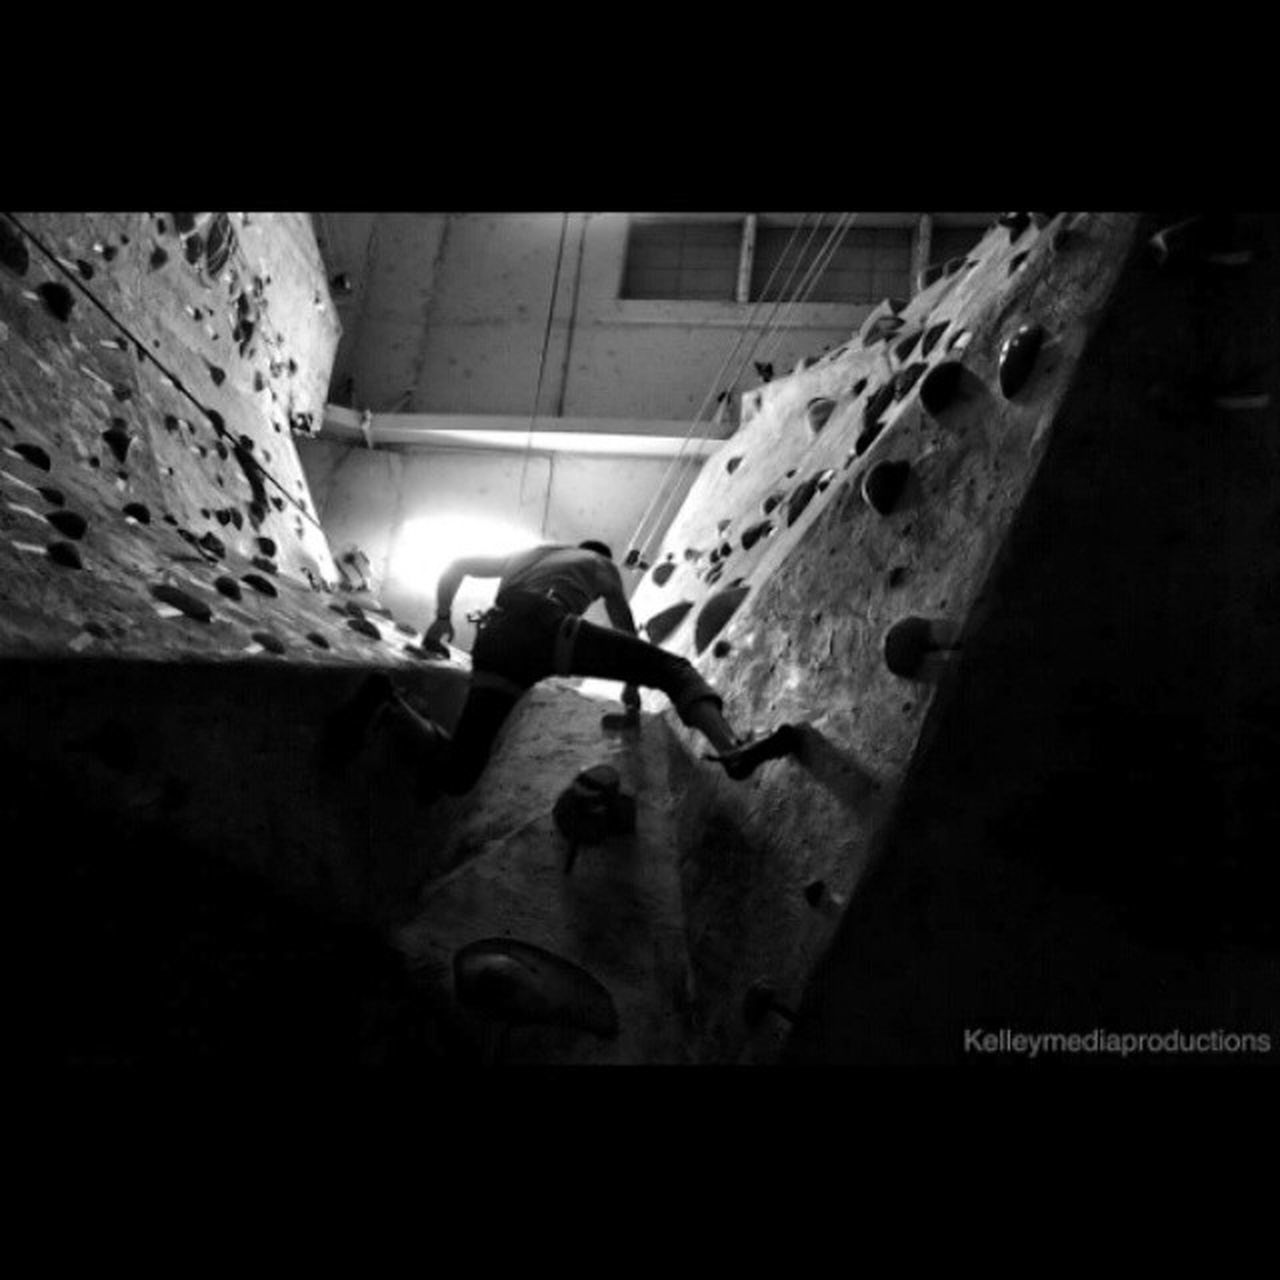 Climbing to the top Kelleymediaproductions Climbing RockClimbing Indoorrockclimbing Toproping Gravityvault Indoor Rockclimbersofinstagram Blackandwhite Blackandwhitephotography Photography Photographersofinstagram Stayrad